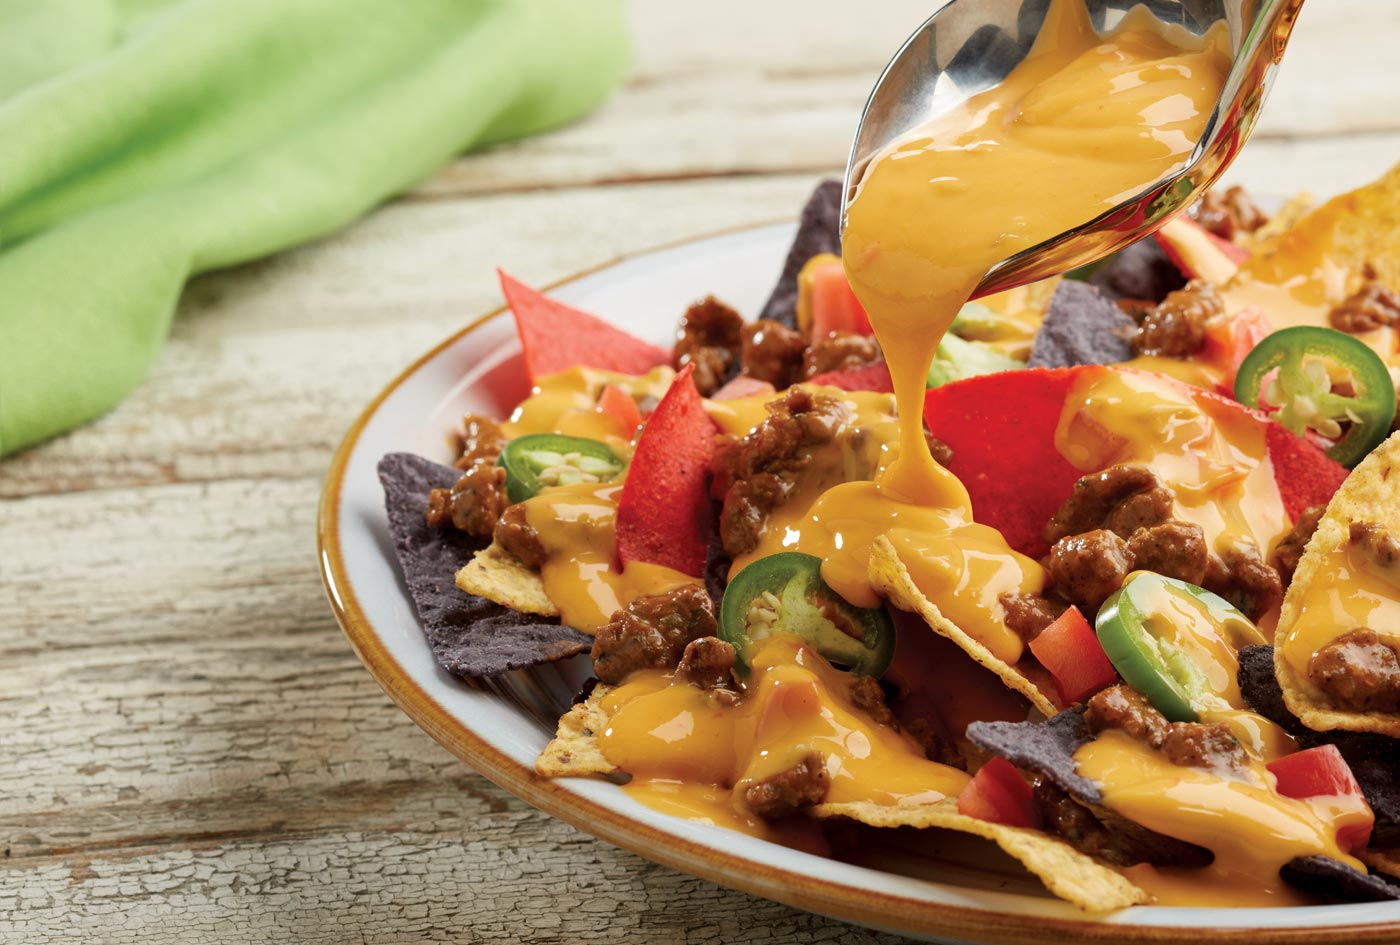 Nachos with creamy cheese sauce—see Grande Custom Ingredients at IFT 2017